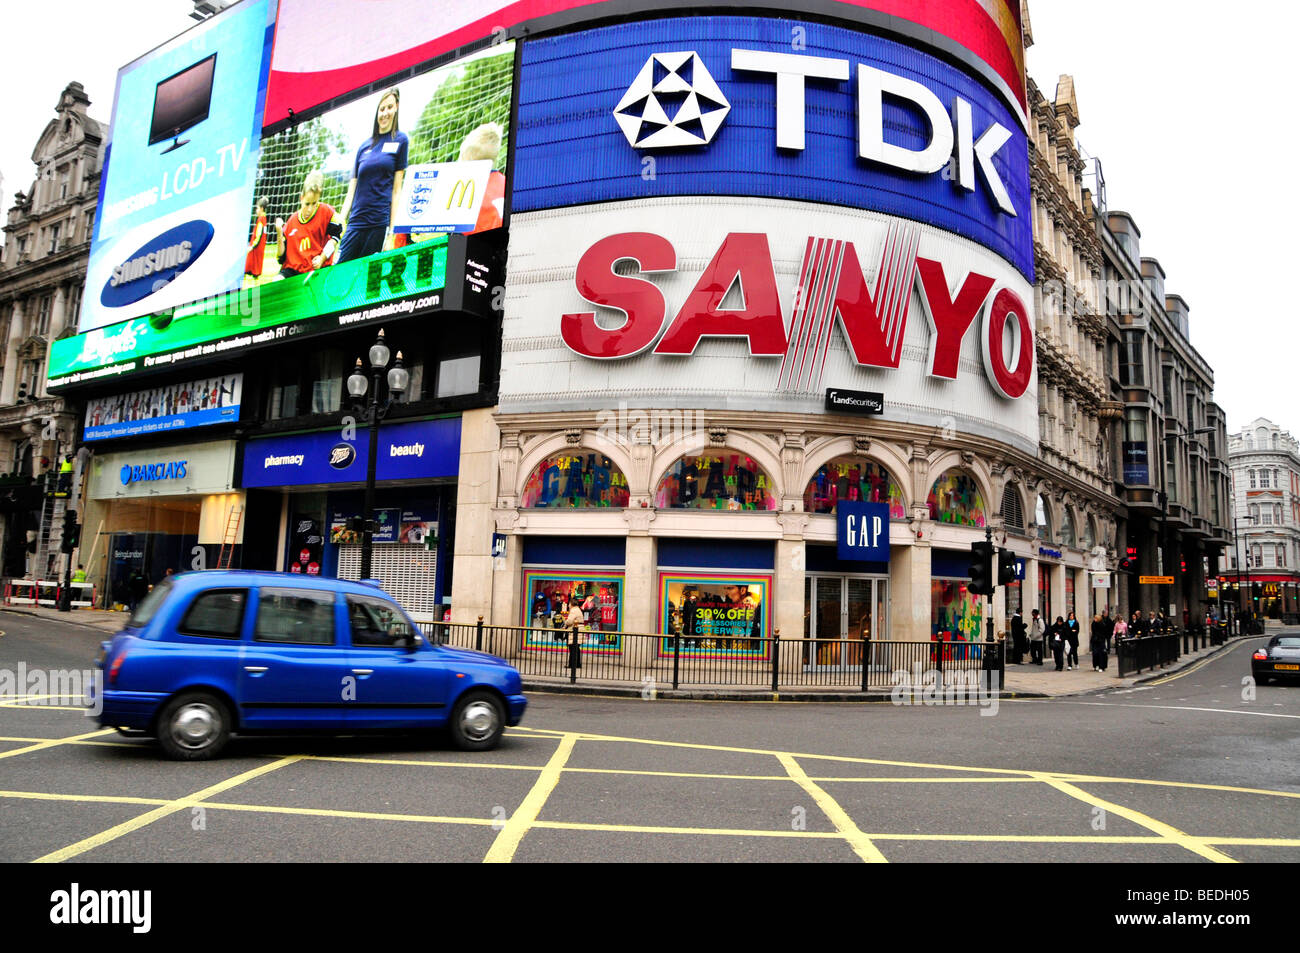 Taxi at Picadilly Circus, London, England, Great Britain, Europe - Stock Image